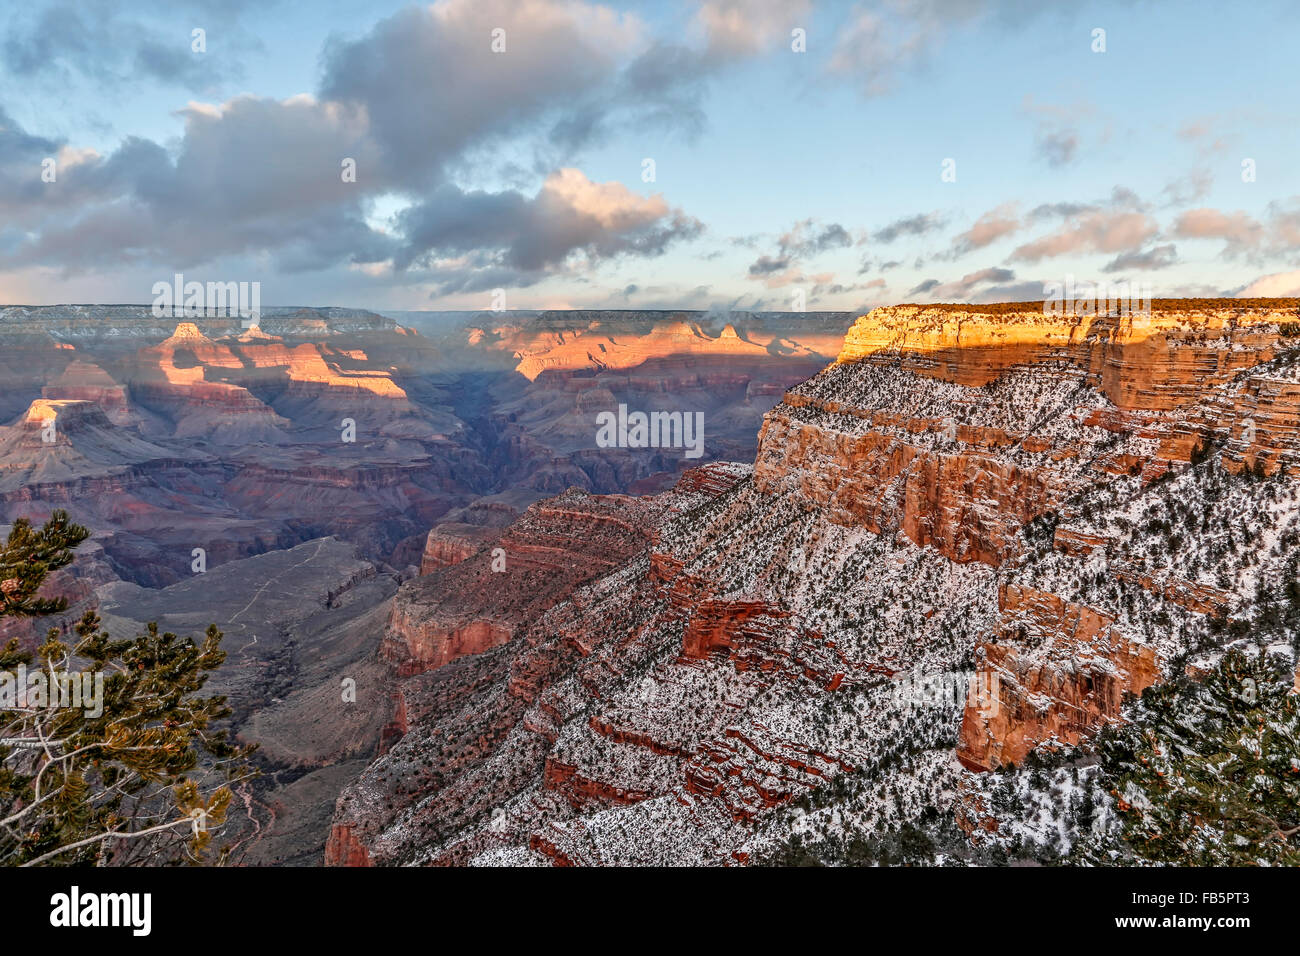 Verschneiten Klippen und Schluchten von Rim Trail im Village, Grand Canyon National Park, Arizona USA Stockbild